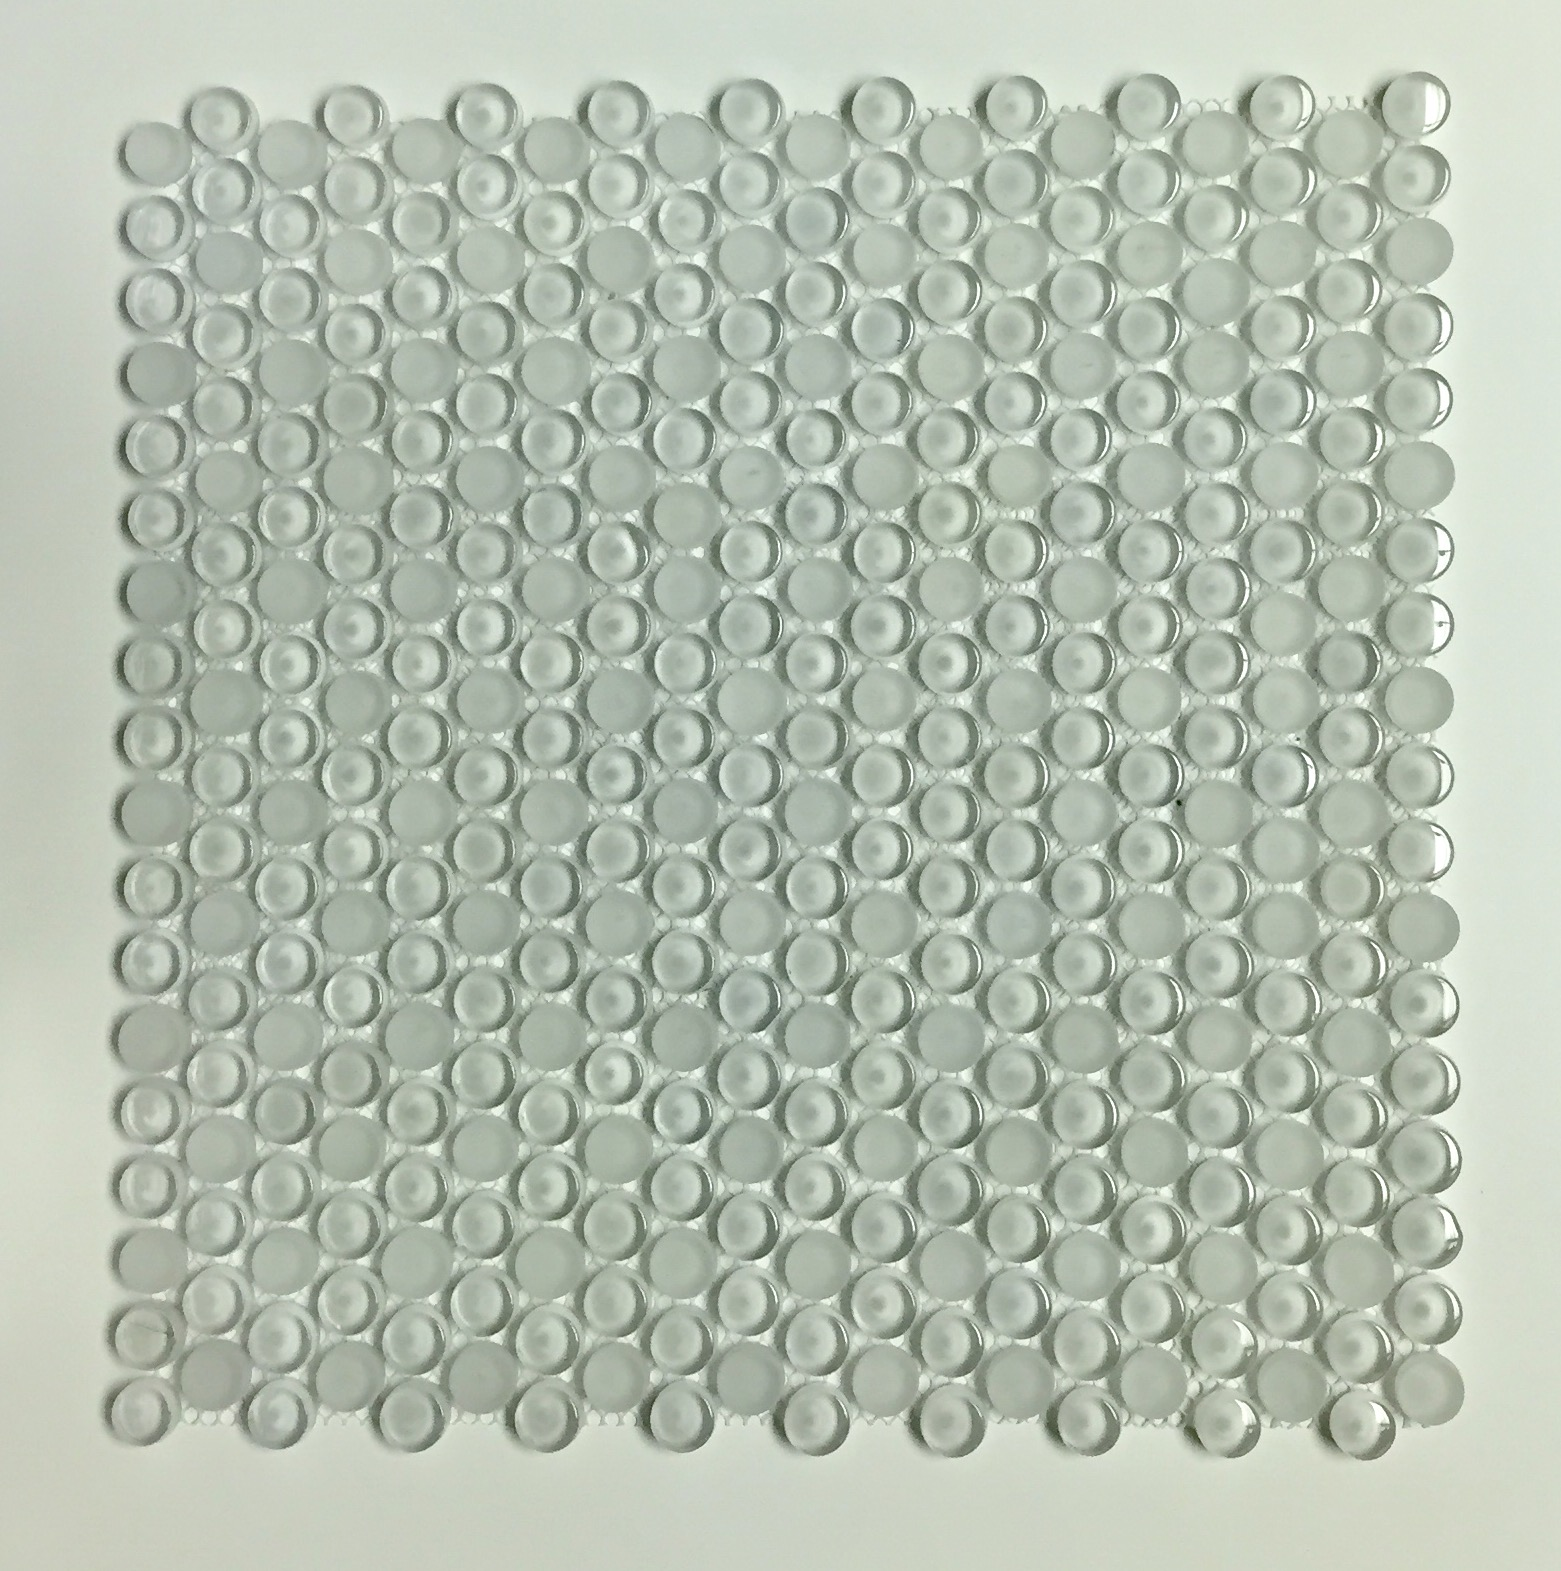 "MAG 941 PENNY ROUND ALL WHITE GLASS 12"" x 12"" Image"